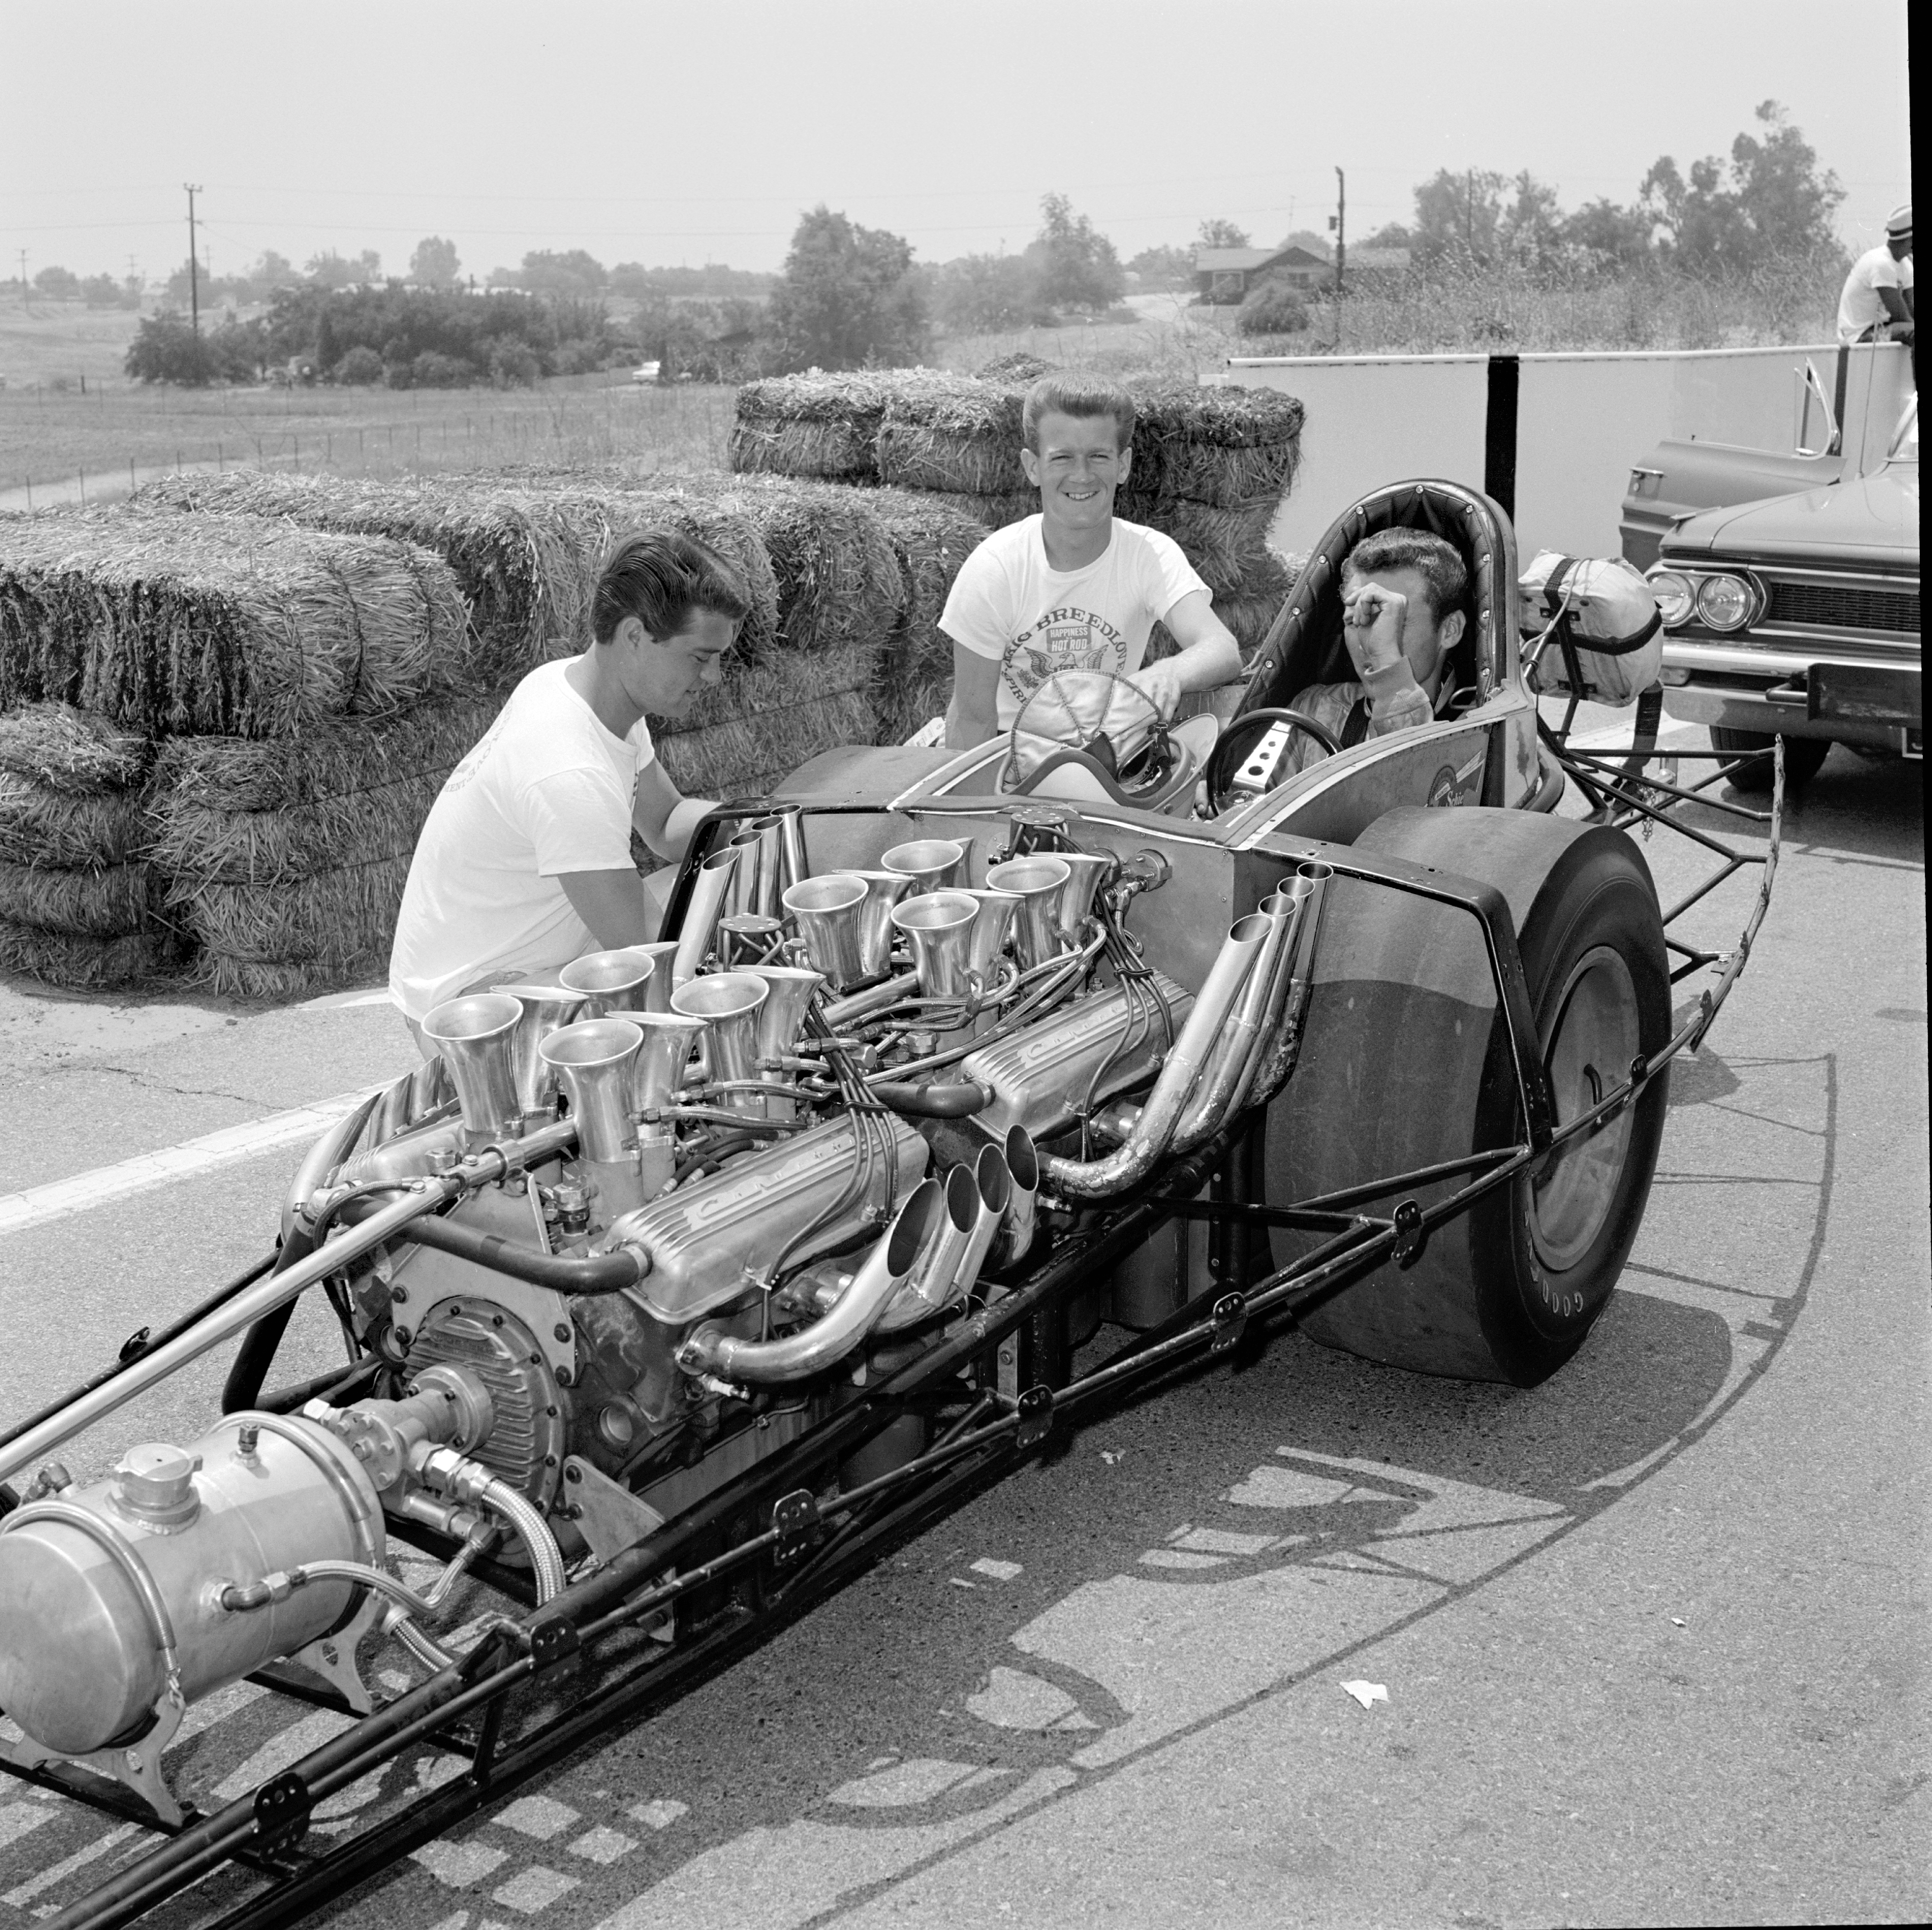 At Riverside's problem-plagued HOT ROD Championships, Nye Frank (left) was still eradicating vibrational bugs from his Pulsator, sans fiberglass shell, and missed Top Fuel's 32-car field. Bob Muravez noticed Eric Rickman's lens in time to preserve Floyd Lippencott Jr.'s secret identity. HRM's second-annual meet went downhill fast after Riverside Raceway's Christmas tree failed, forcing staggered, flag starts in handicapped eliminators.